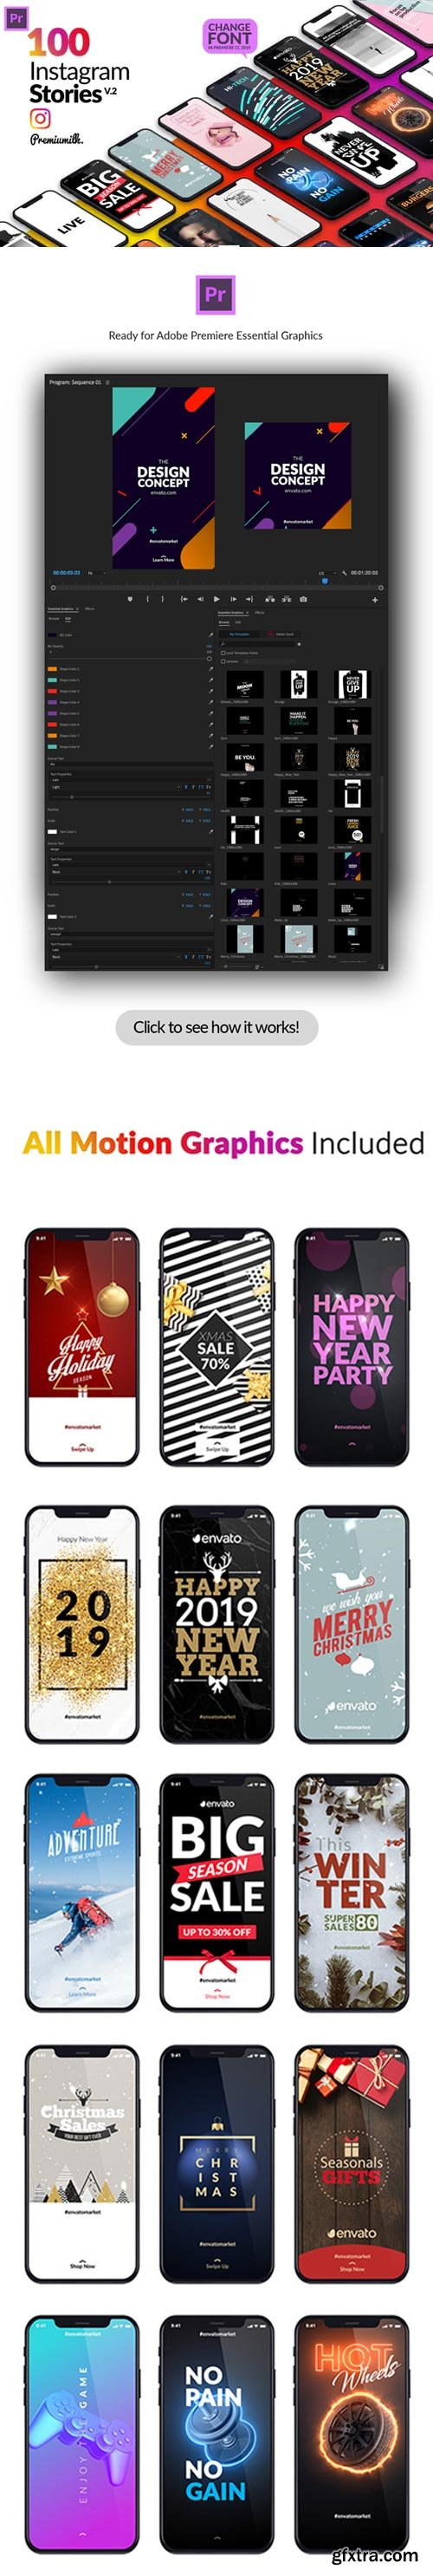 Videohive - Instagram Stories Package Essential Graphics | Mogrt V2 - 22961692